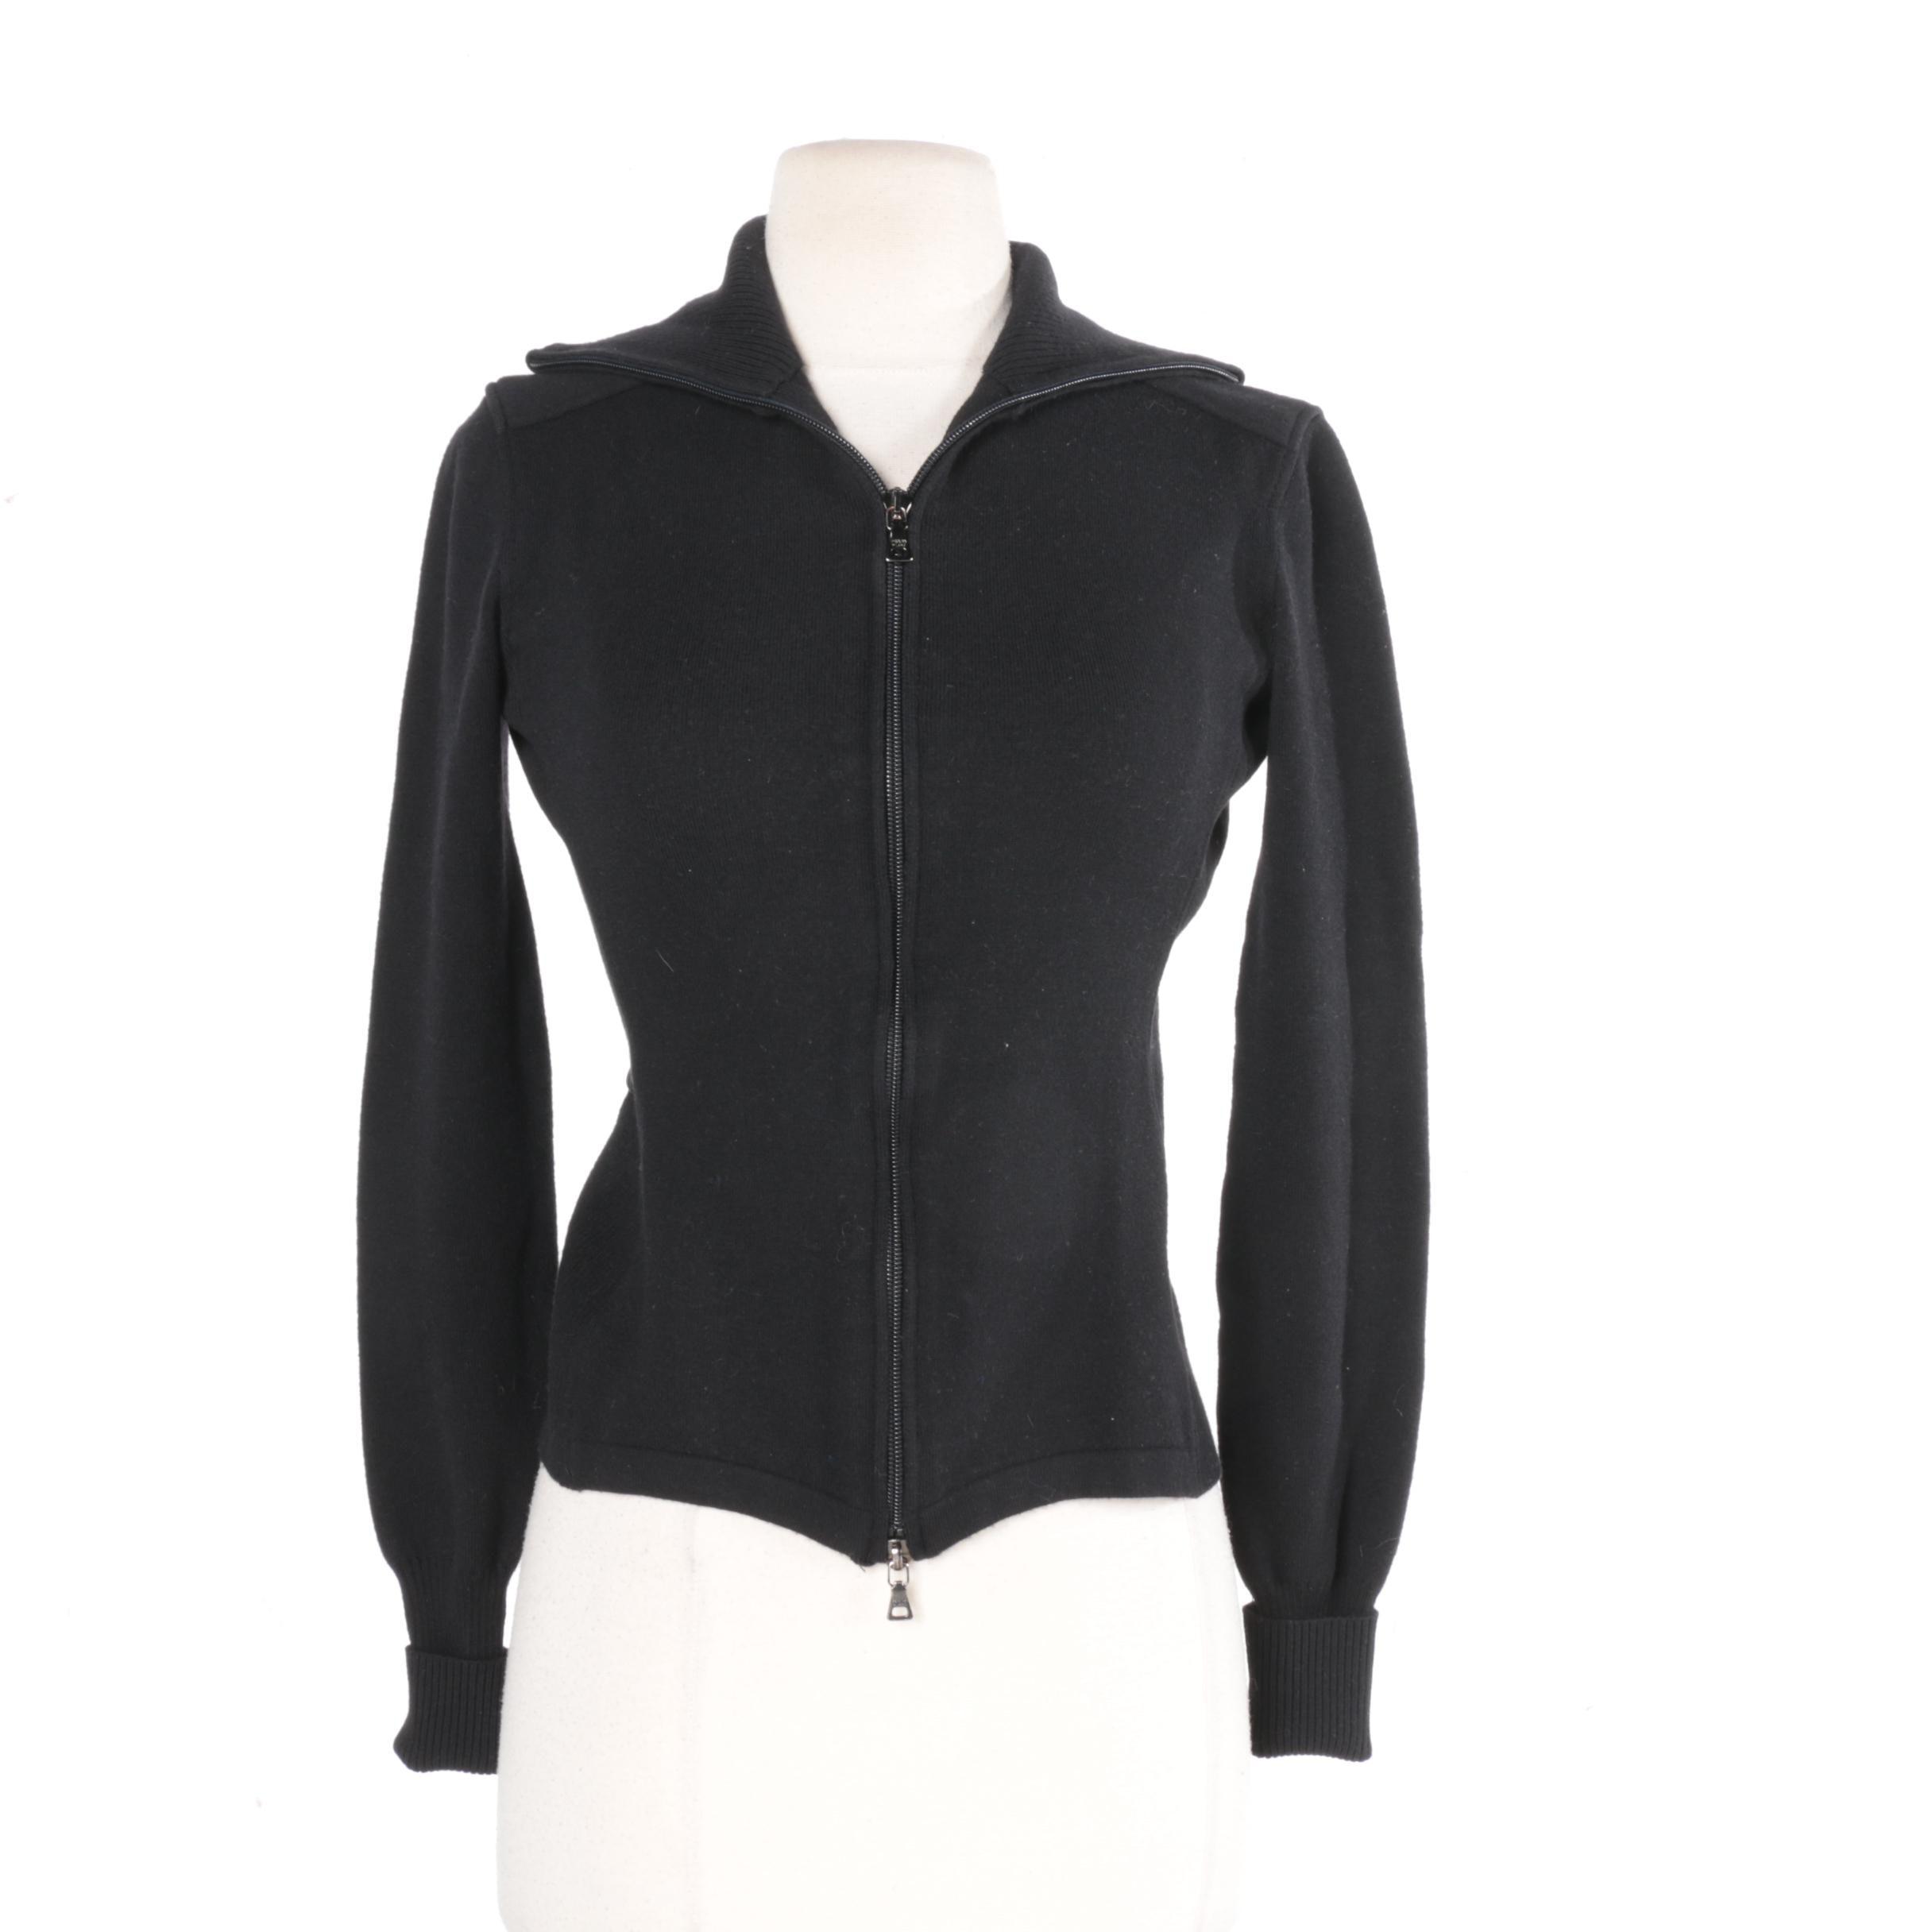 Women's Prada Black Wool Zipper Front Jacket